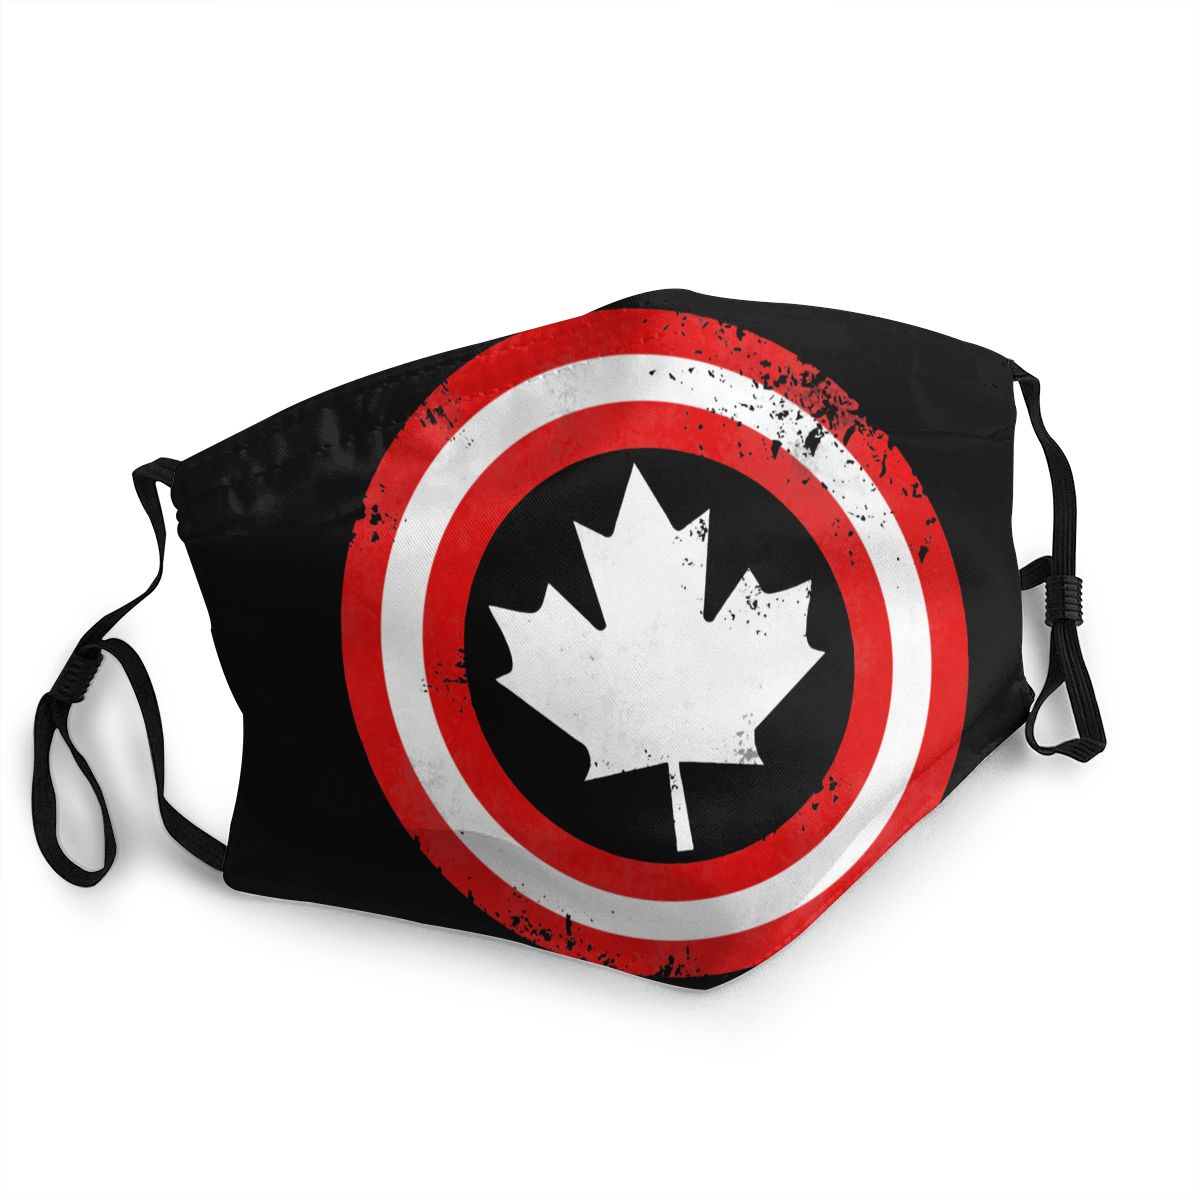 Captain Canada Non-Disposable Face Mask Superhero Anti Haze Dustproof Mask Thickened Protection Cover Respirator Muffle